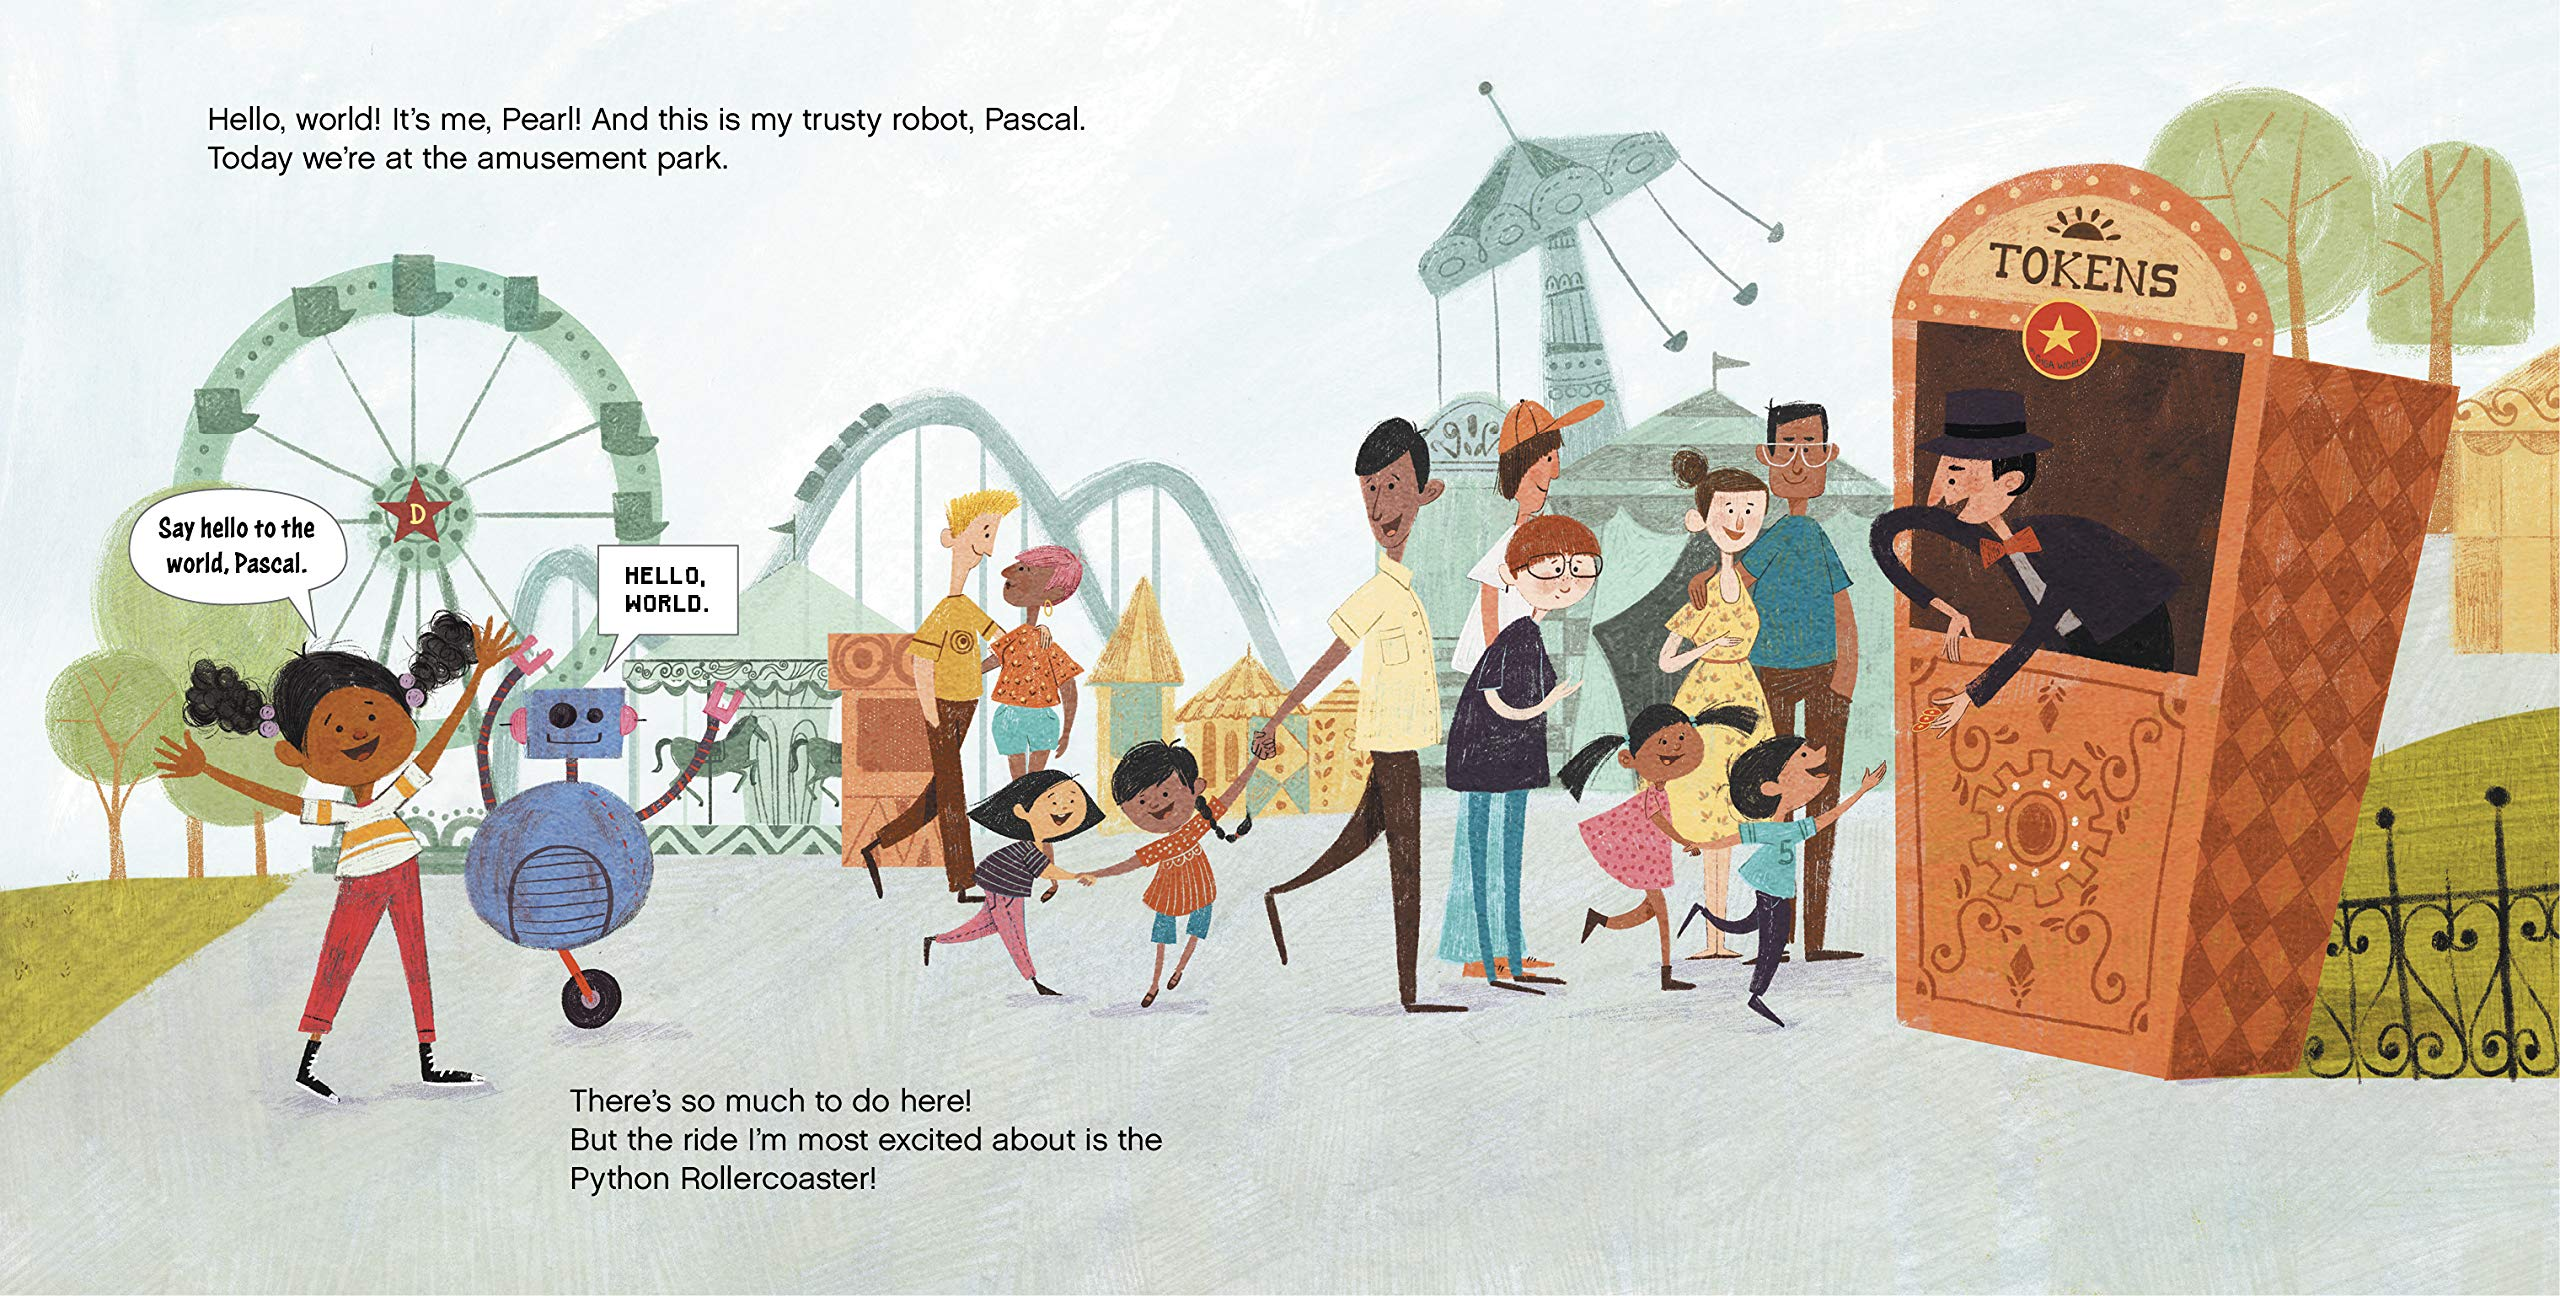 celebrate-picture-books-picture-book-review-how-to-code-a-rollercoaster-tokens